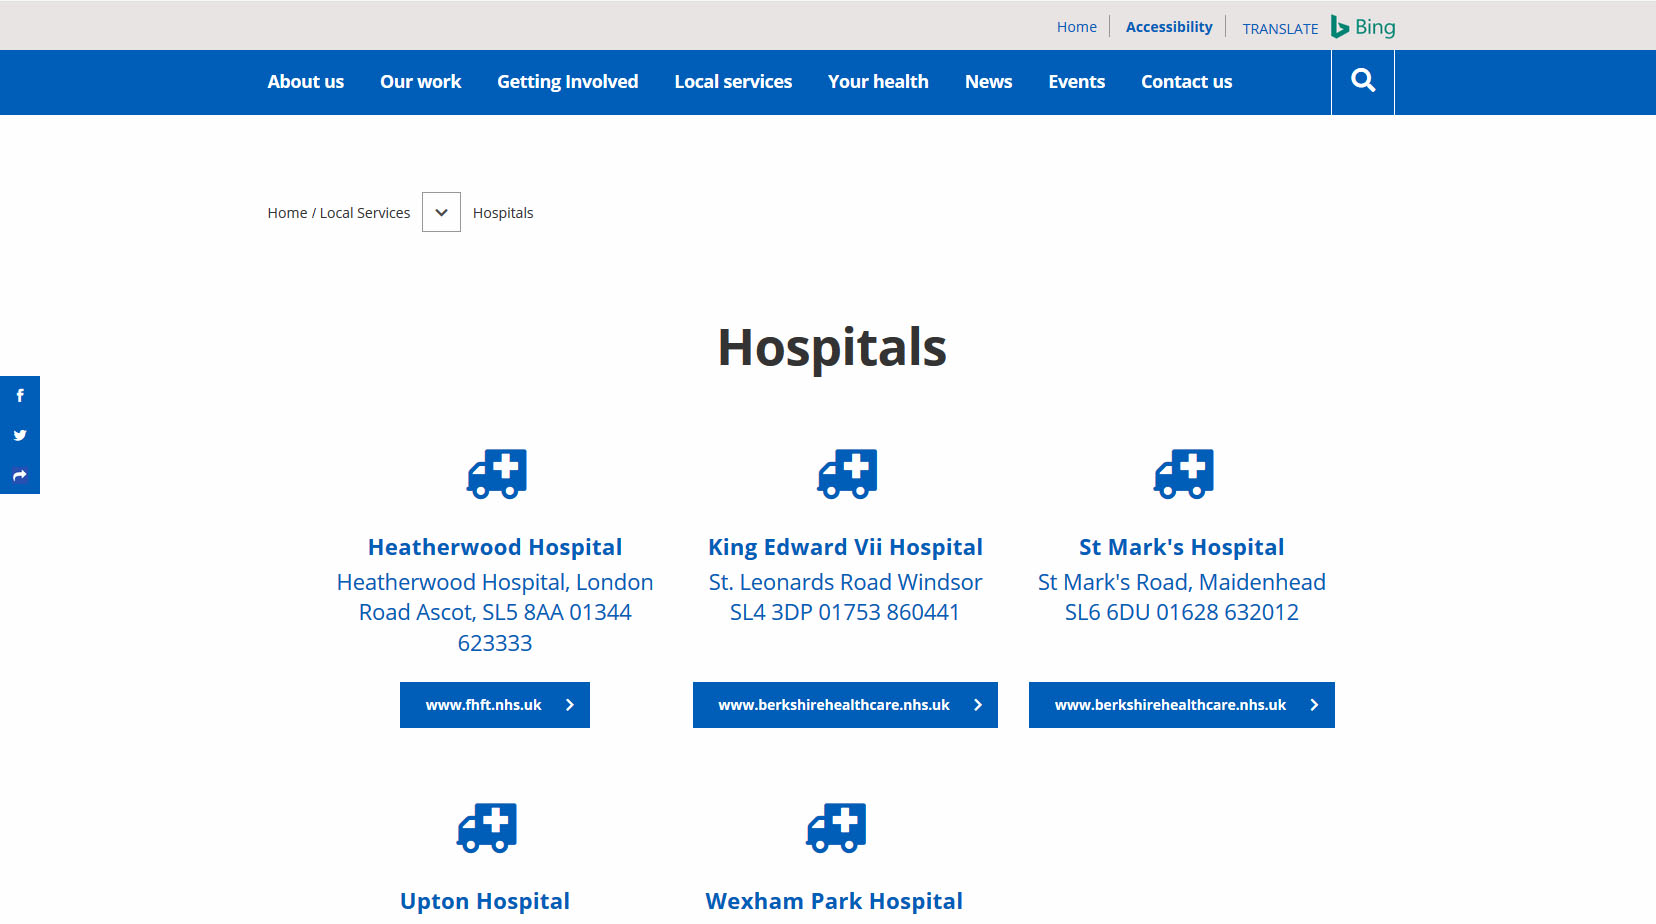 NHS website design and development agency